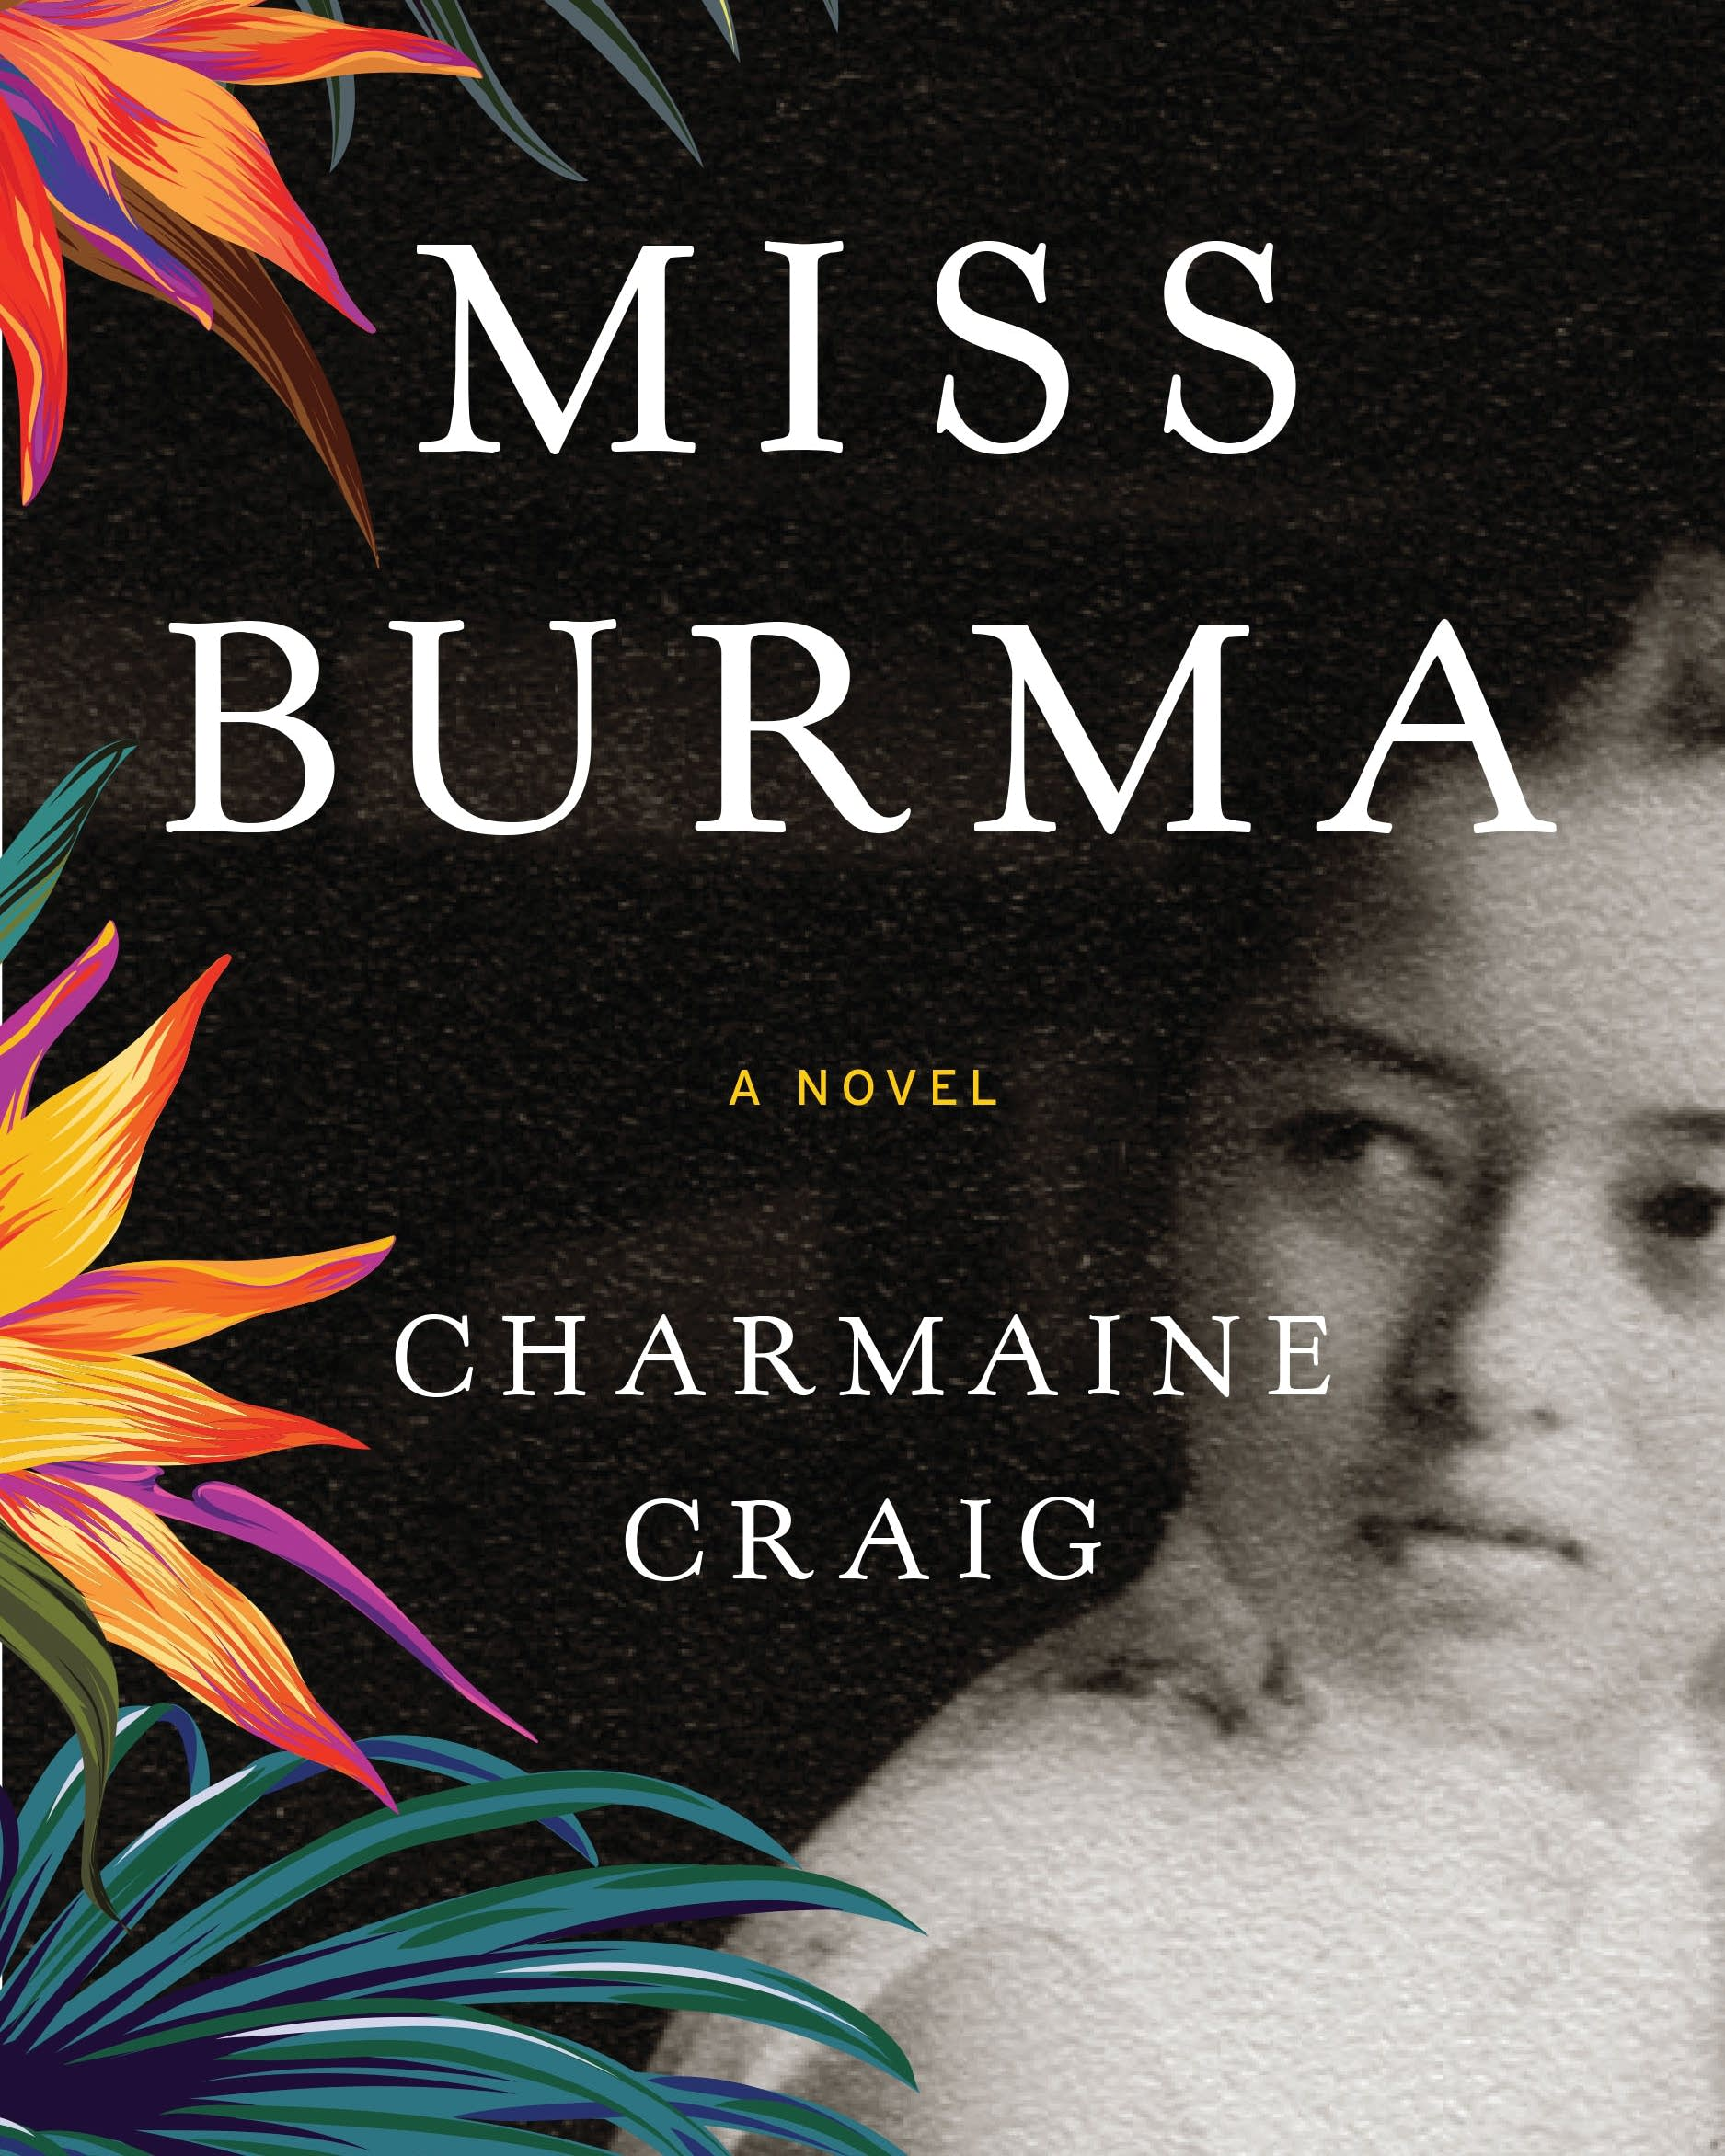 Charmaine Craig's novel, 'Miss Burma'